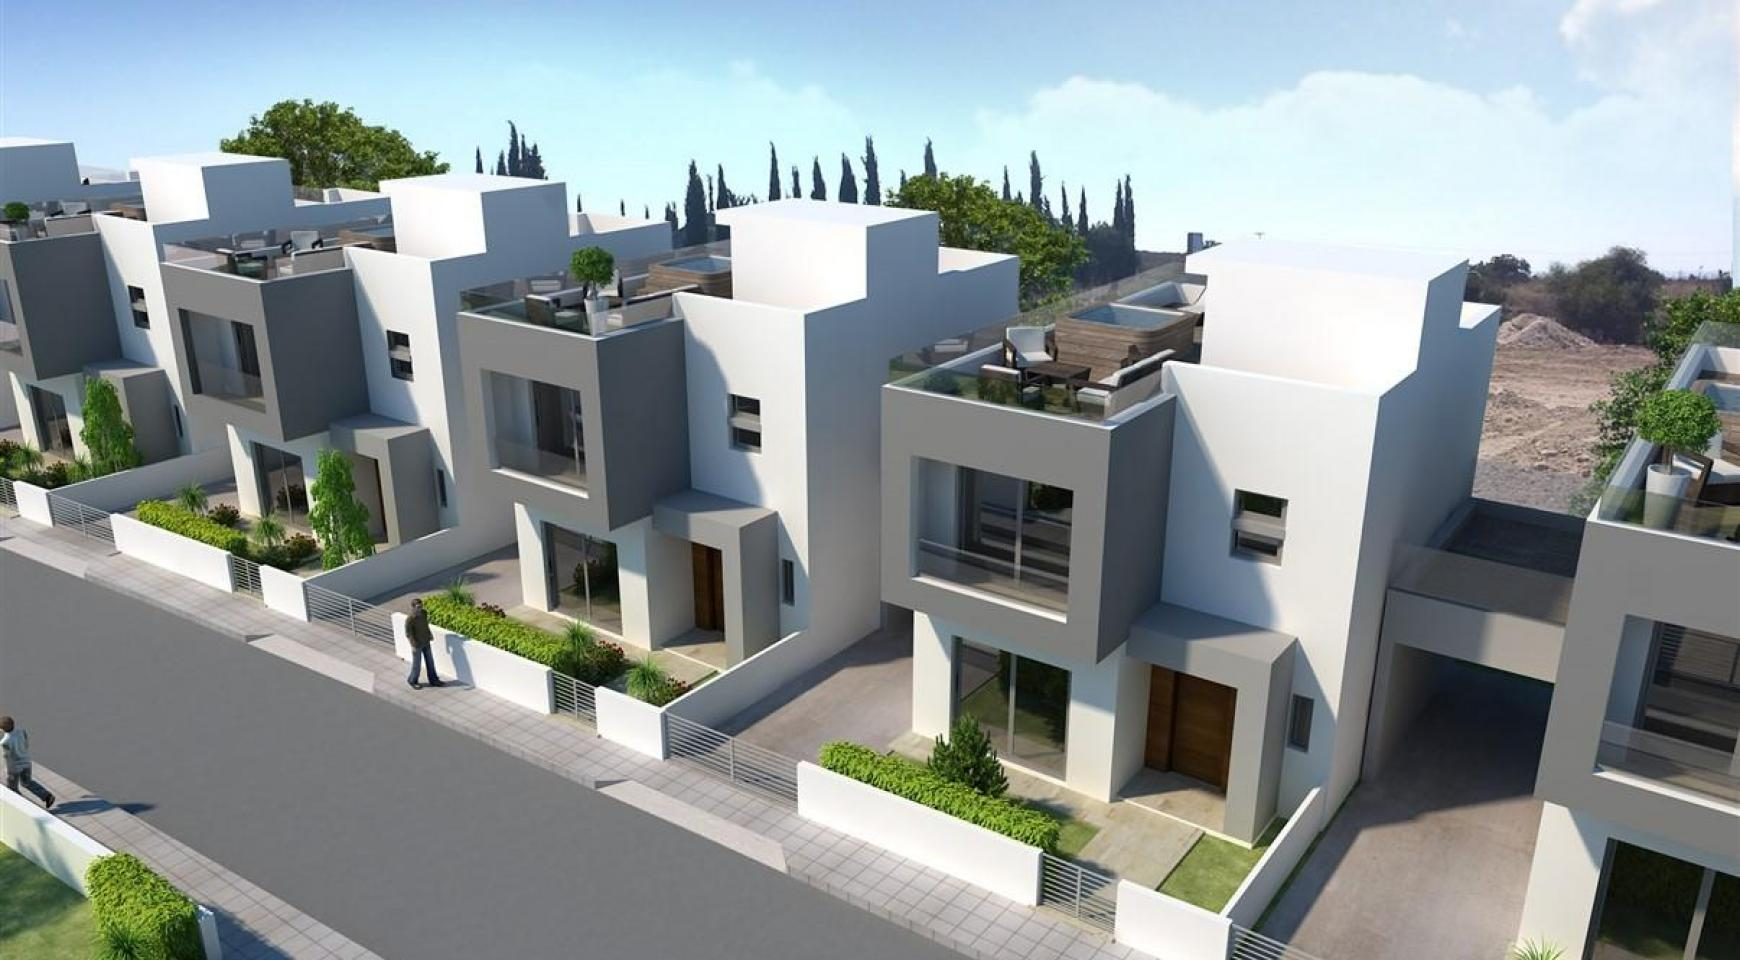 3 Bedroom Villa in New Project in Paphos - 2